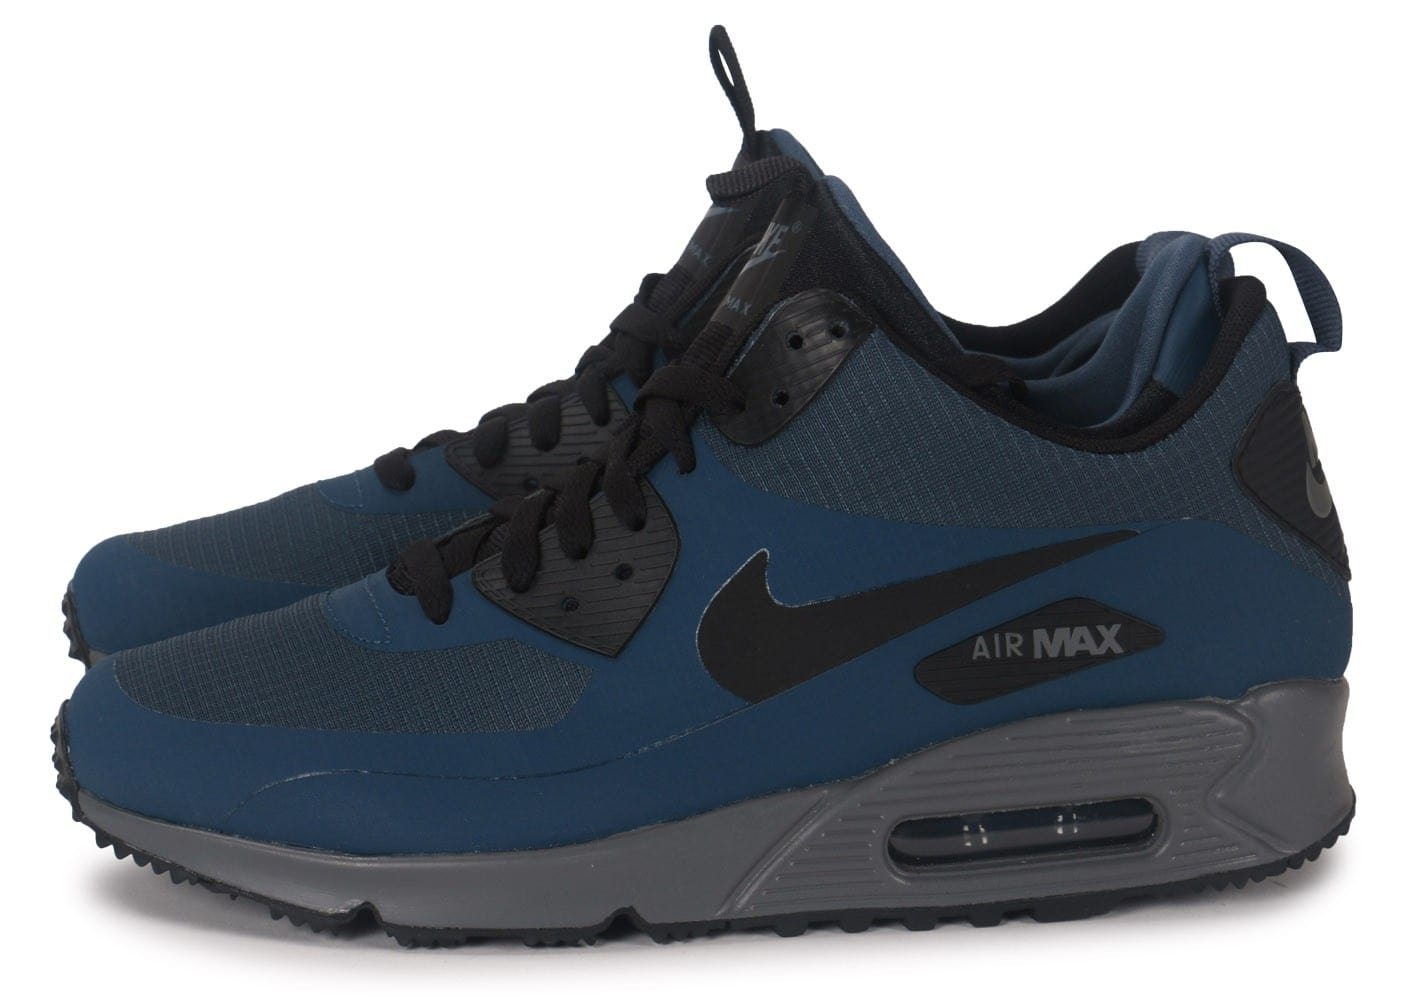 Nike Air Max 90 Mid Winter bleu Chaussures Baskets homme